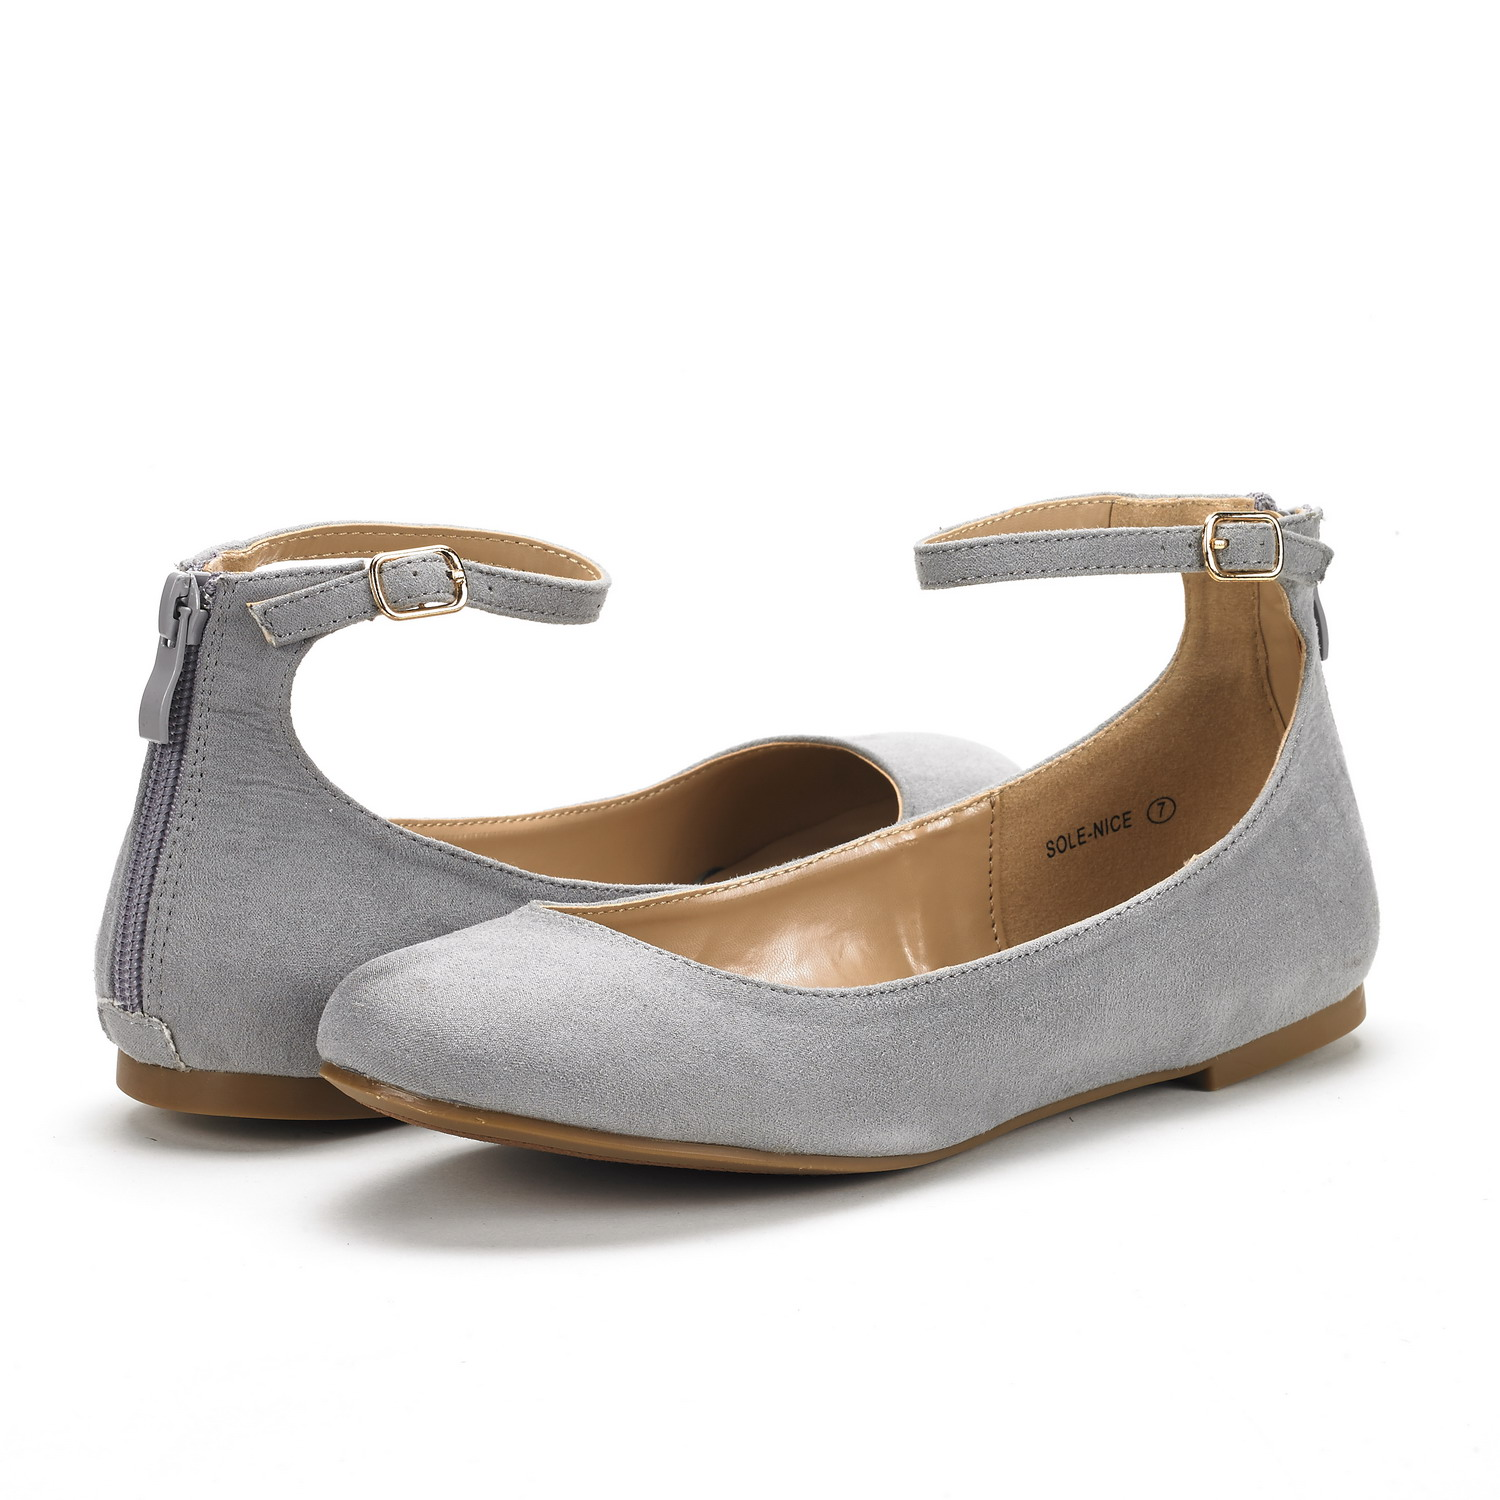 f15bef49af2 DREAM PAIRS Women Sole-Nice Casual Ankle Strap Street Walking Ballet ...